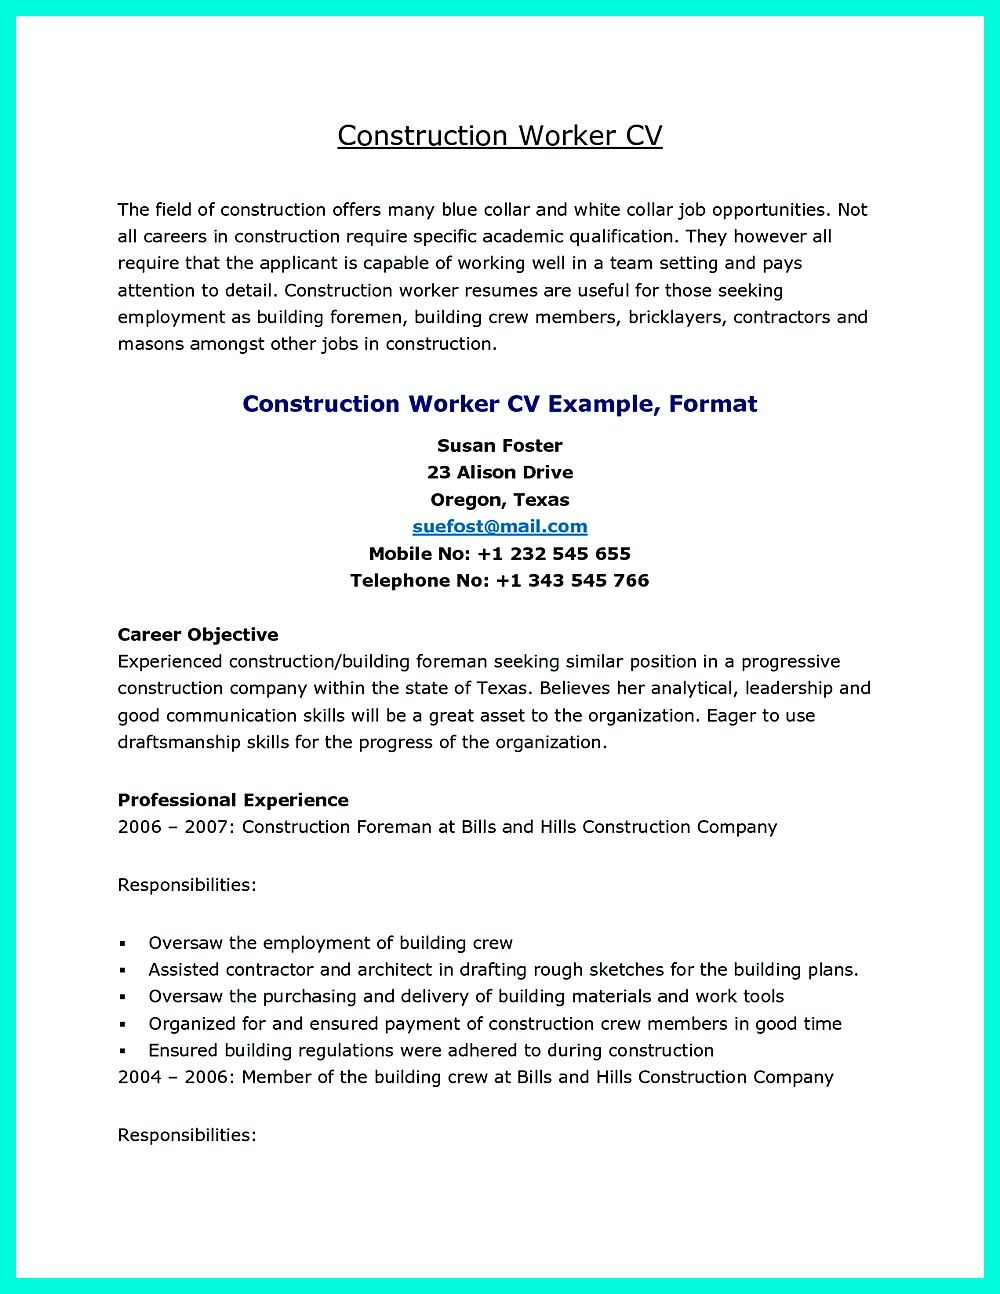 Construction Laborer Resume Is Designed For Those Who Will Work On The Building Sites The Resume Is For Both Construction Company And Also Constructo Check